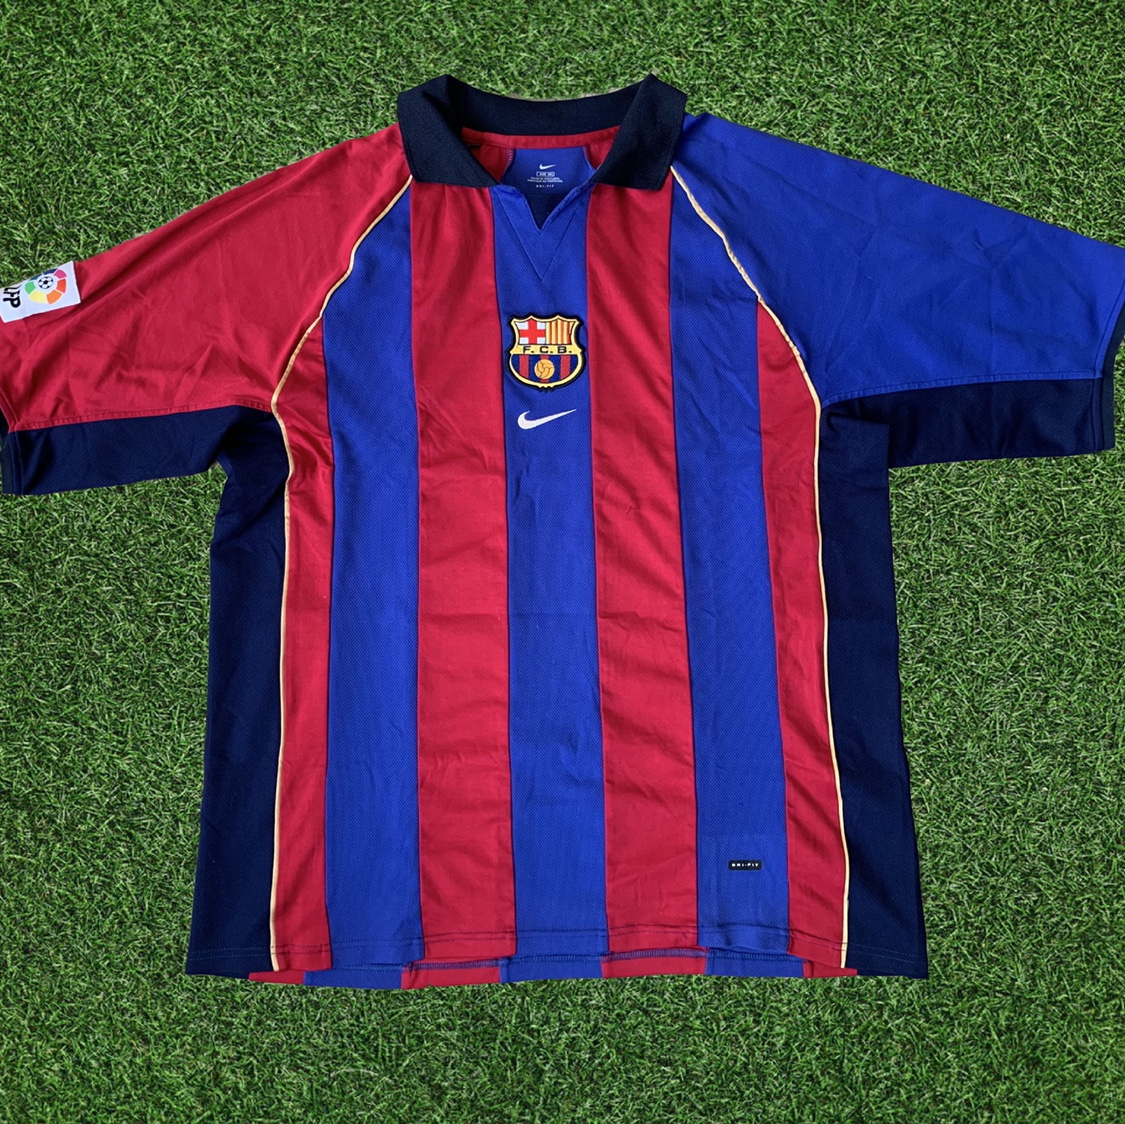 new product d3611 9c70b 2001-2002 FC Barcelona Vintage Nike Jersey 1 of the... - Depop